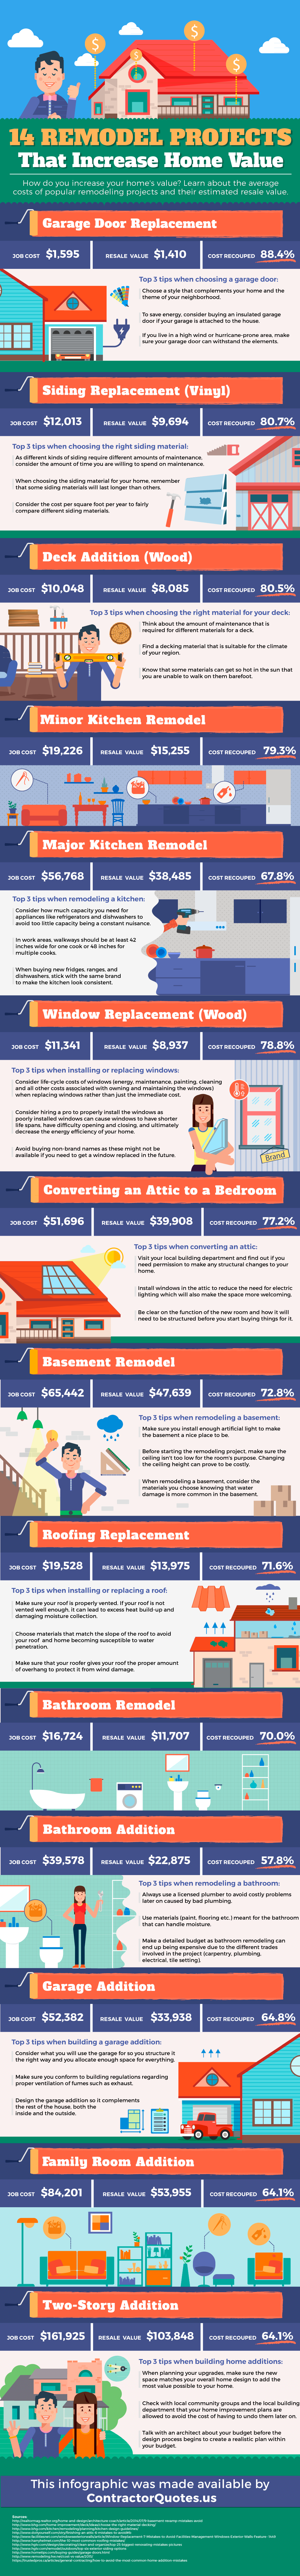 Remodeling projects that increase home value infographic